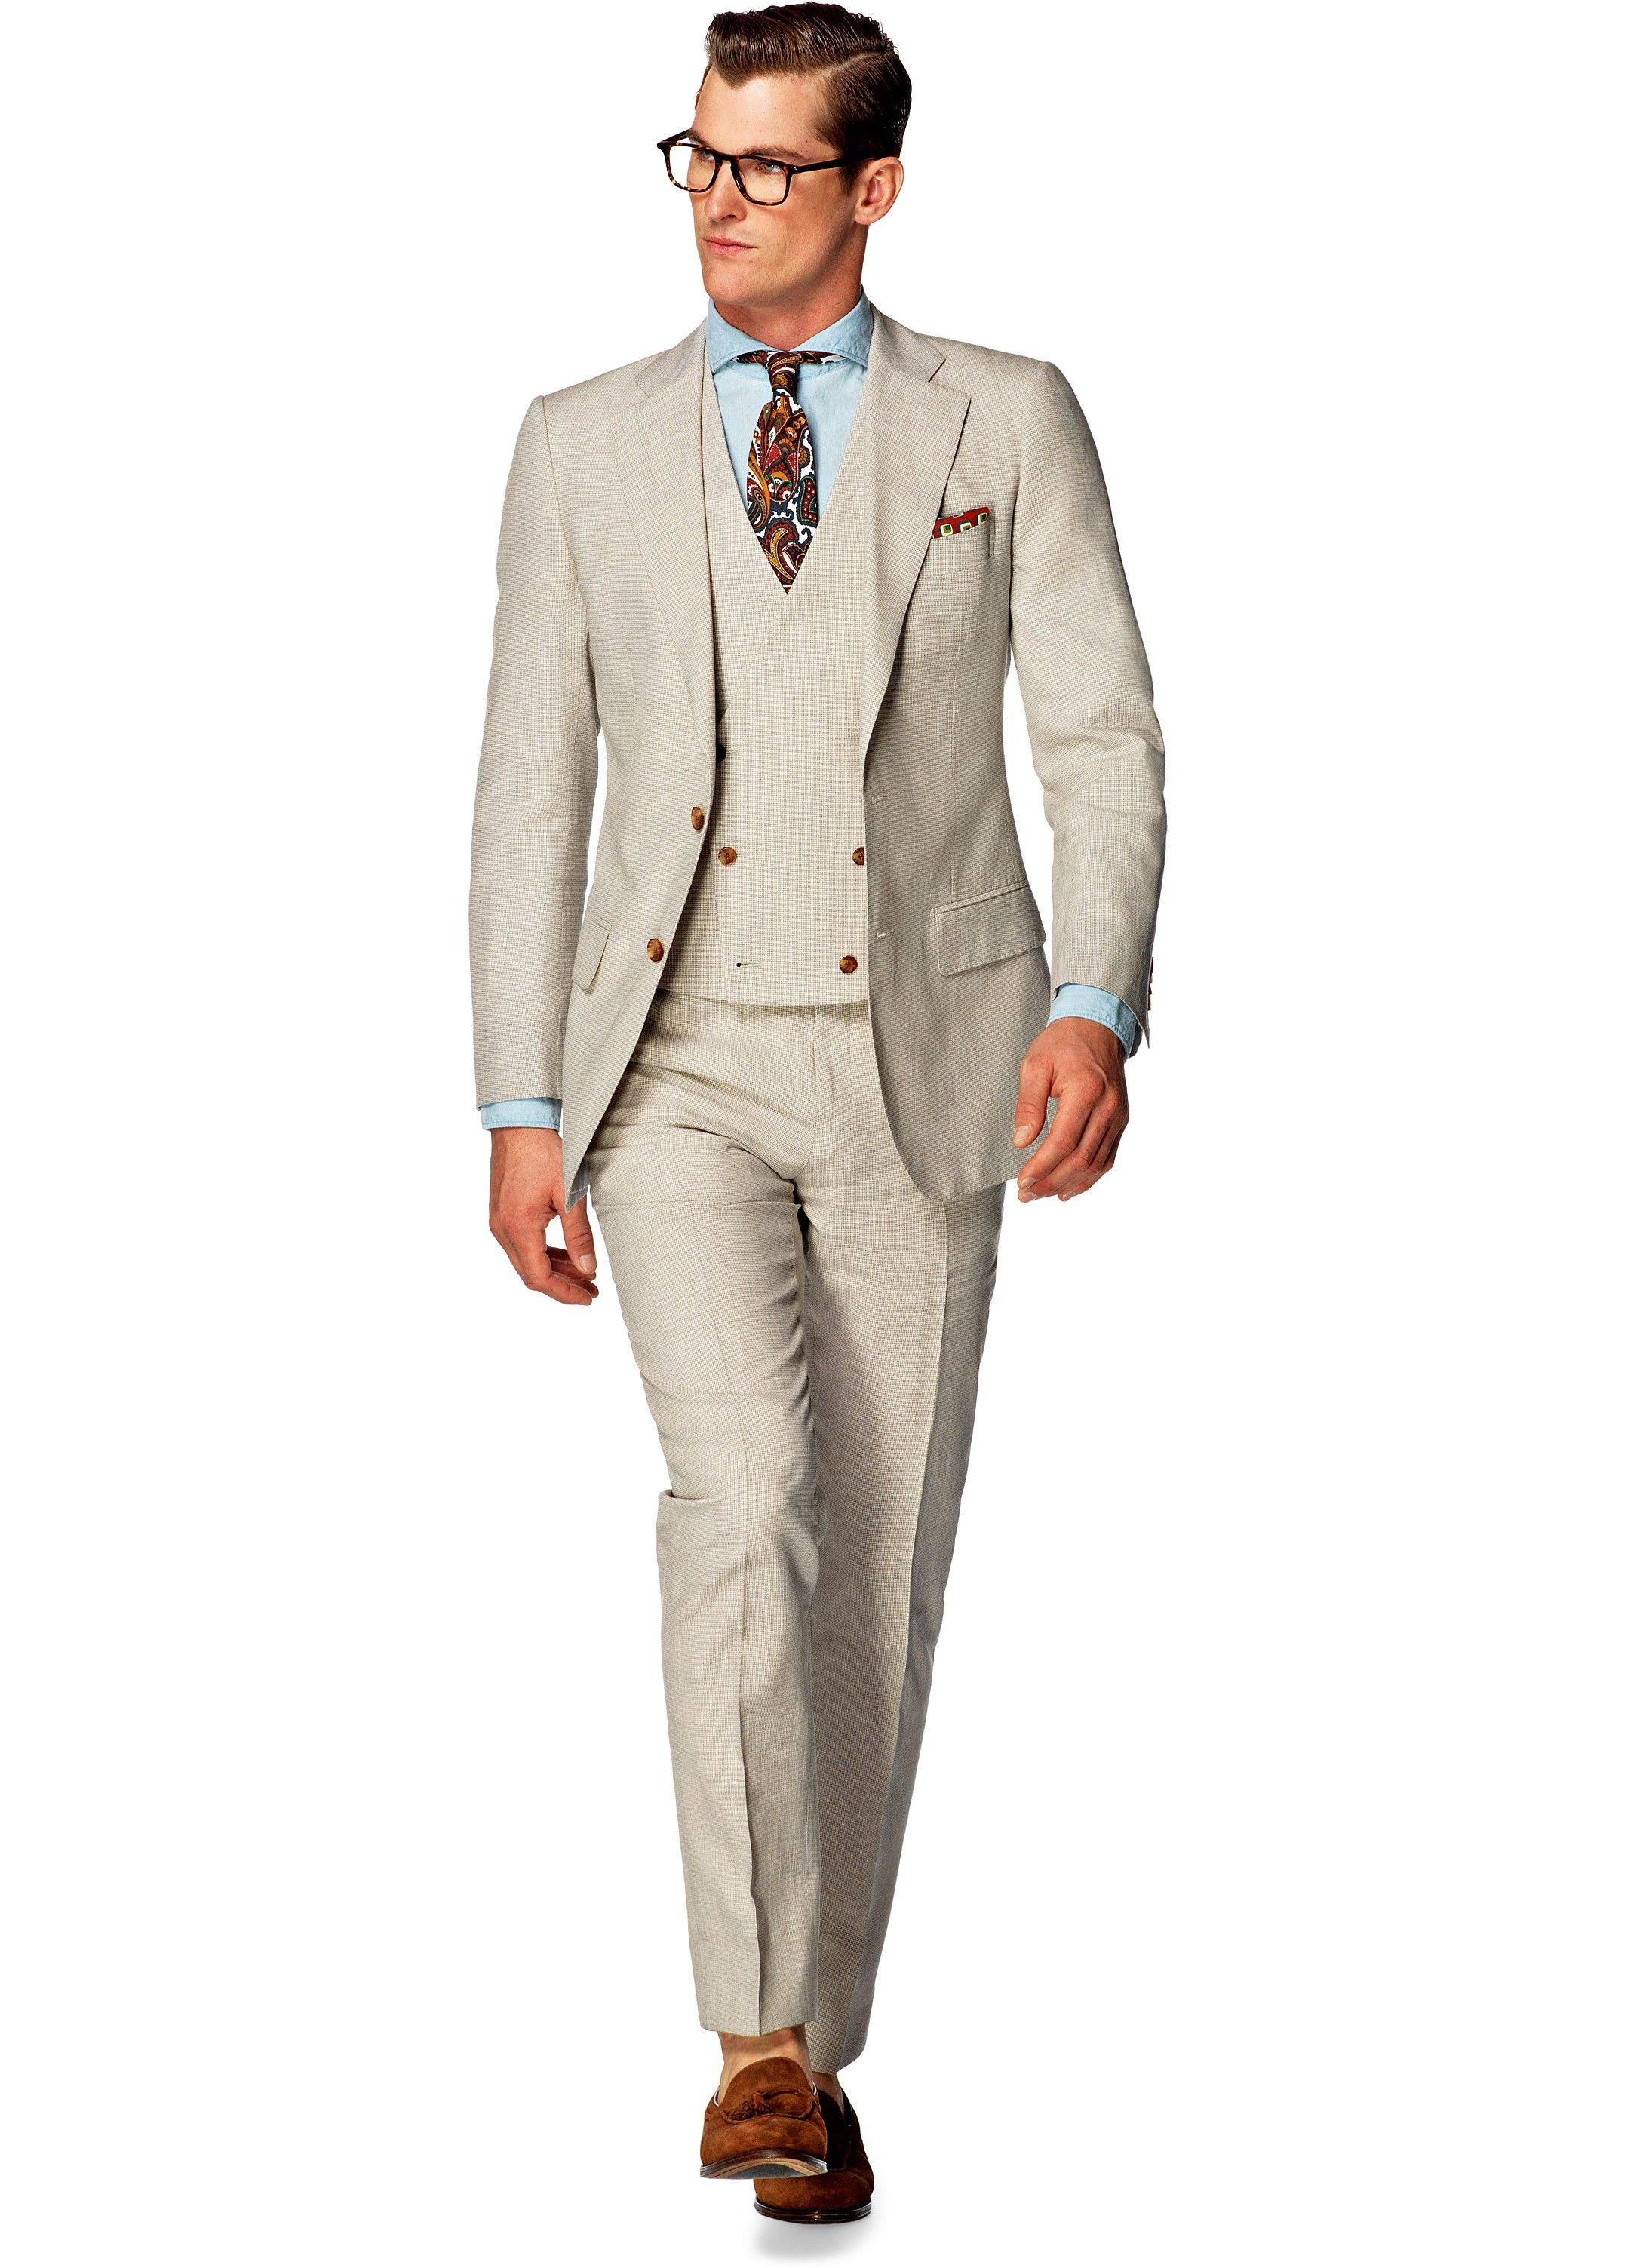 Suit Light Brown Check Lazio P4248i | Suitsupply Online Store ...